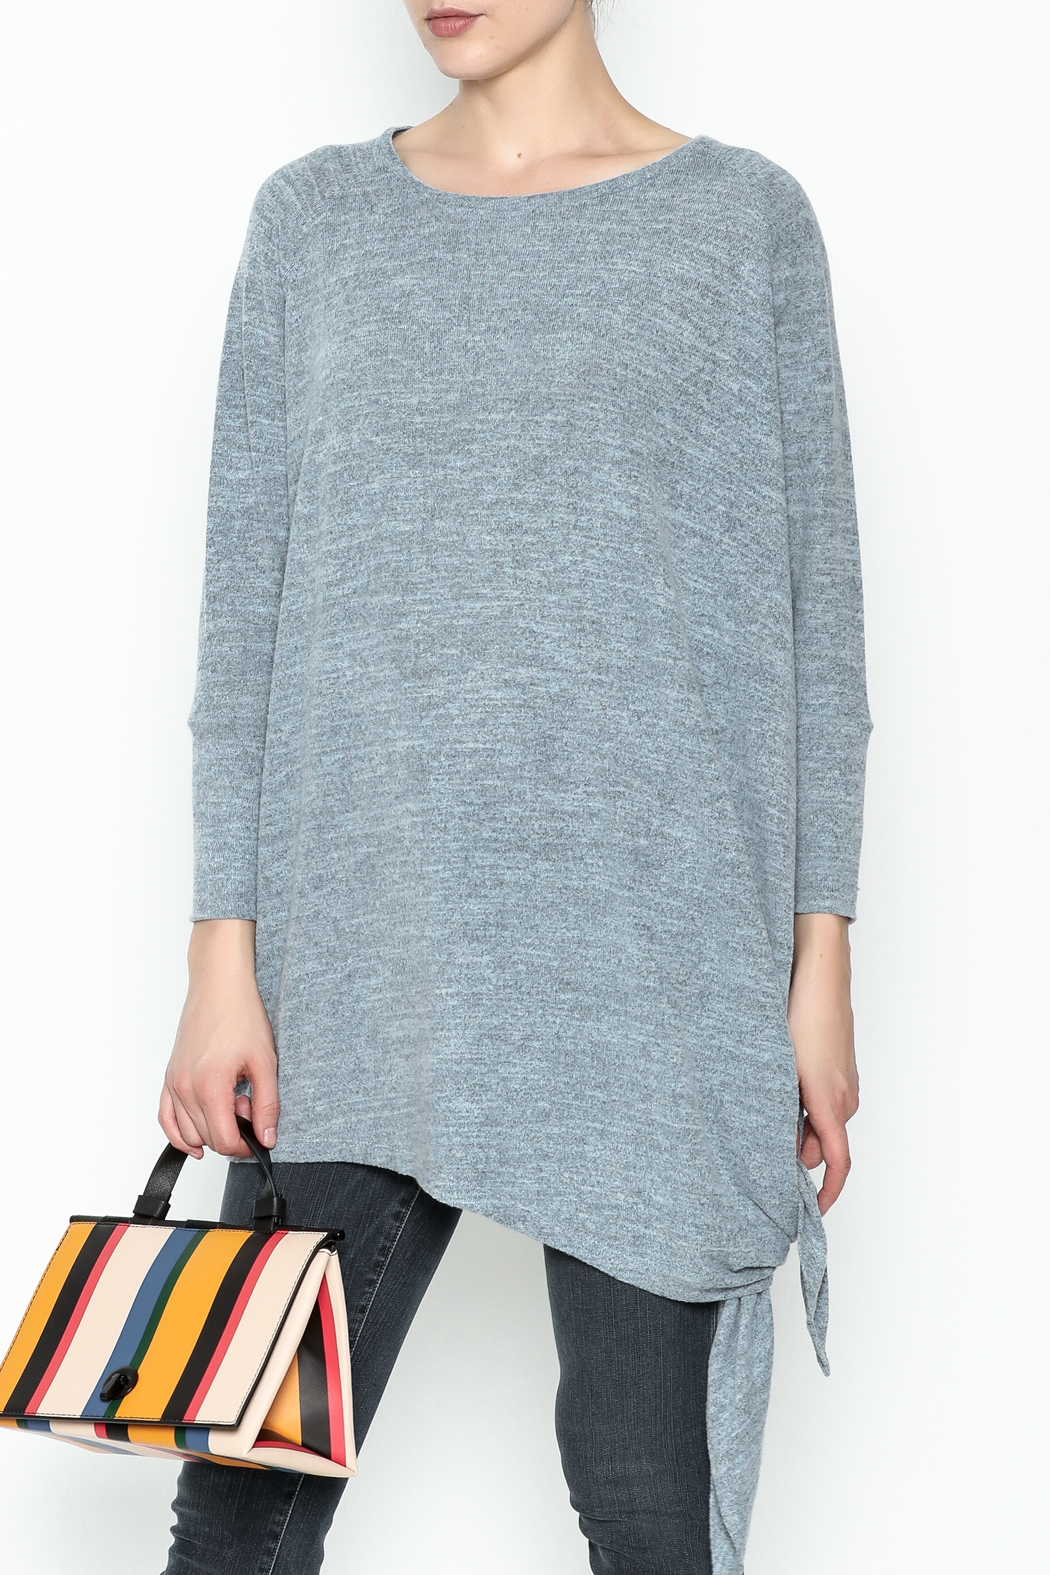 Coco + Carmen Assymetrical Tunic Top - Front Cropped Image